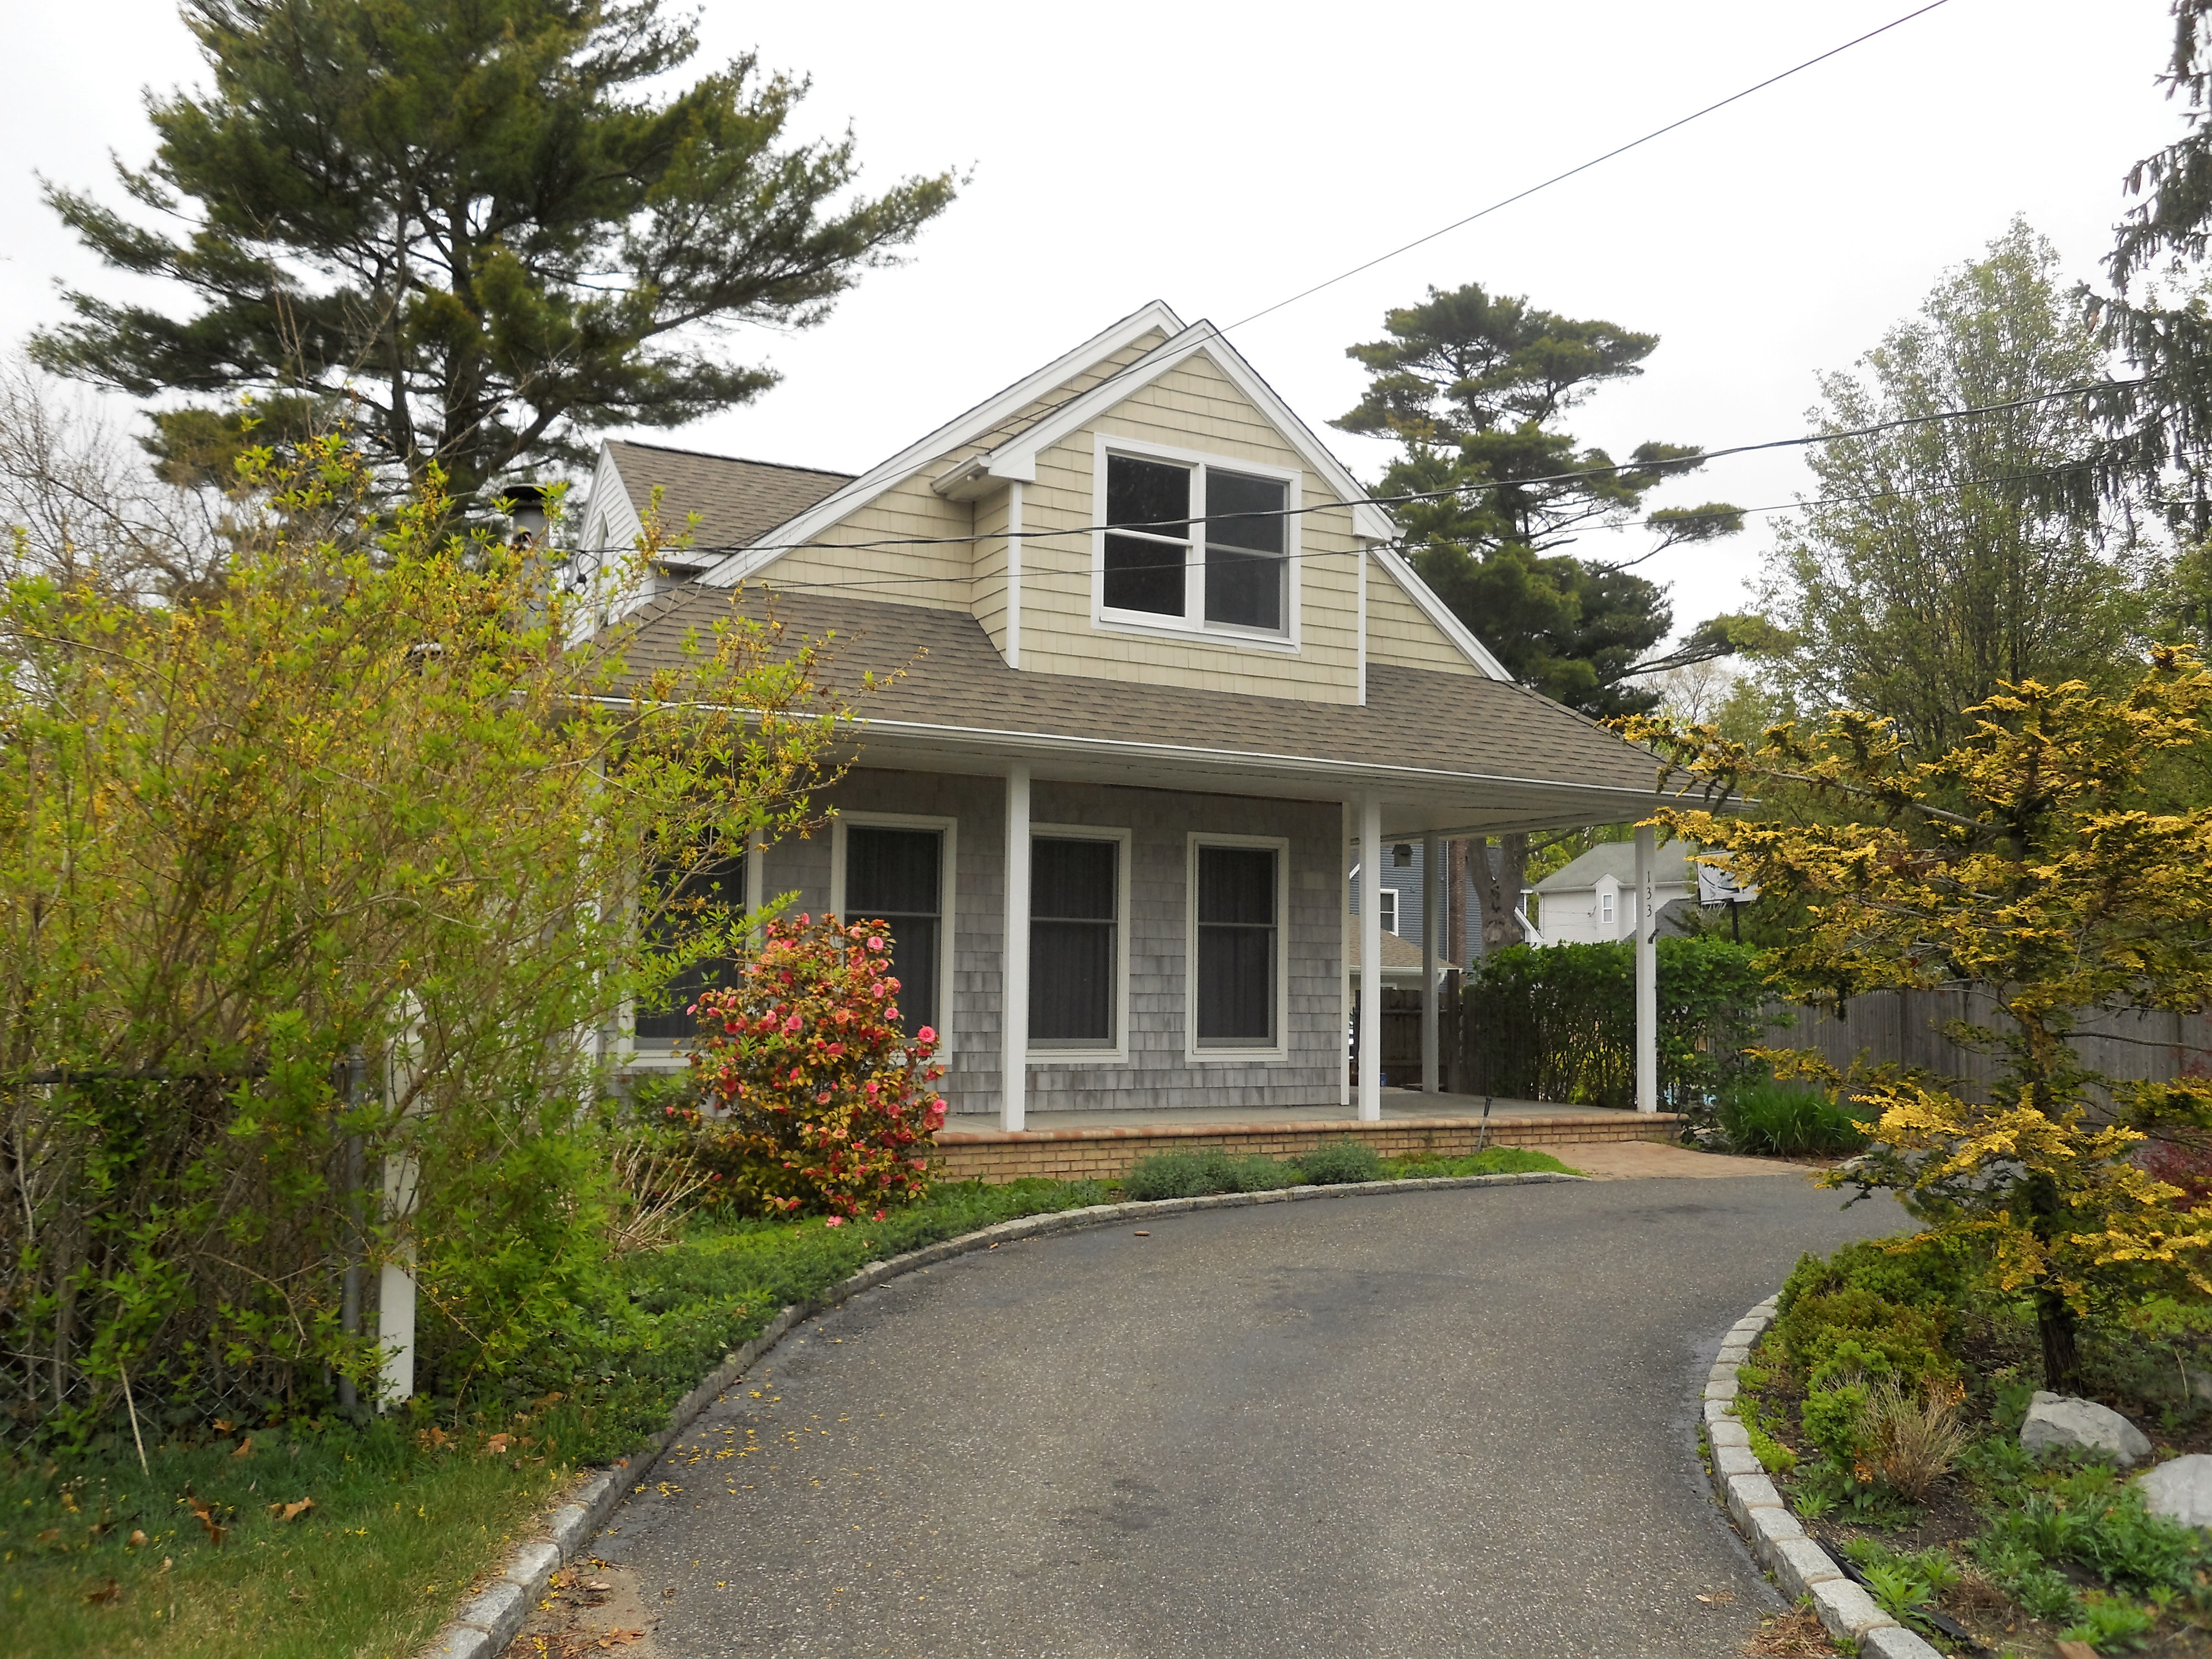 Single Family Home for Sale at Cape 133 Maple St Lake Grove, New York, 11755 United States